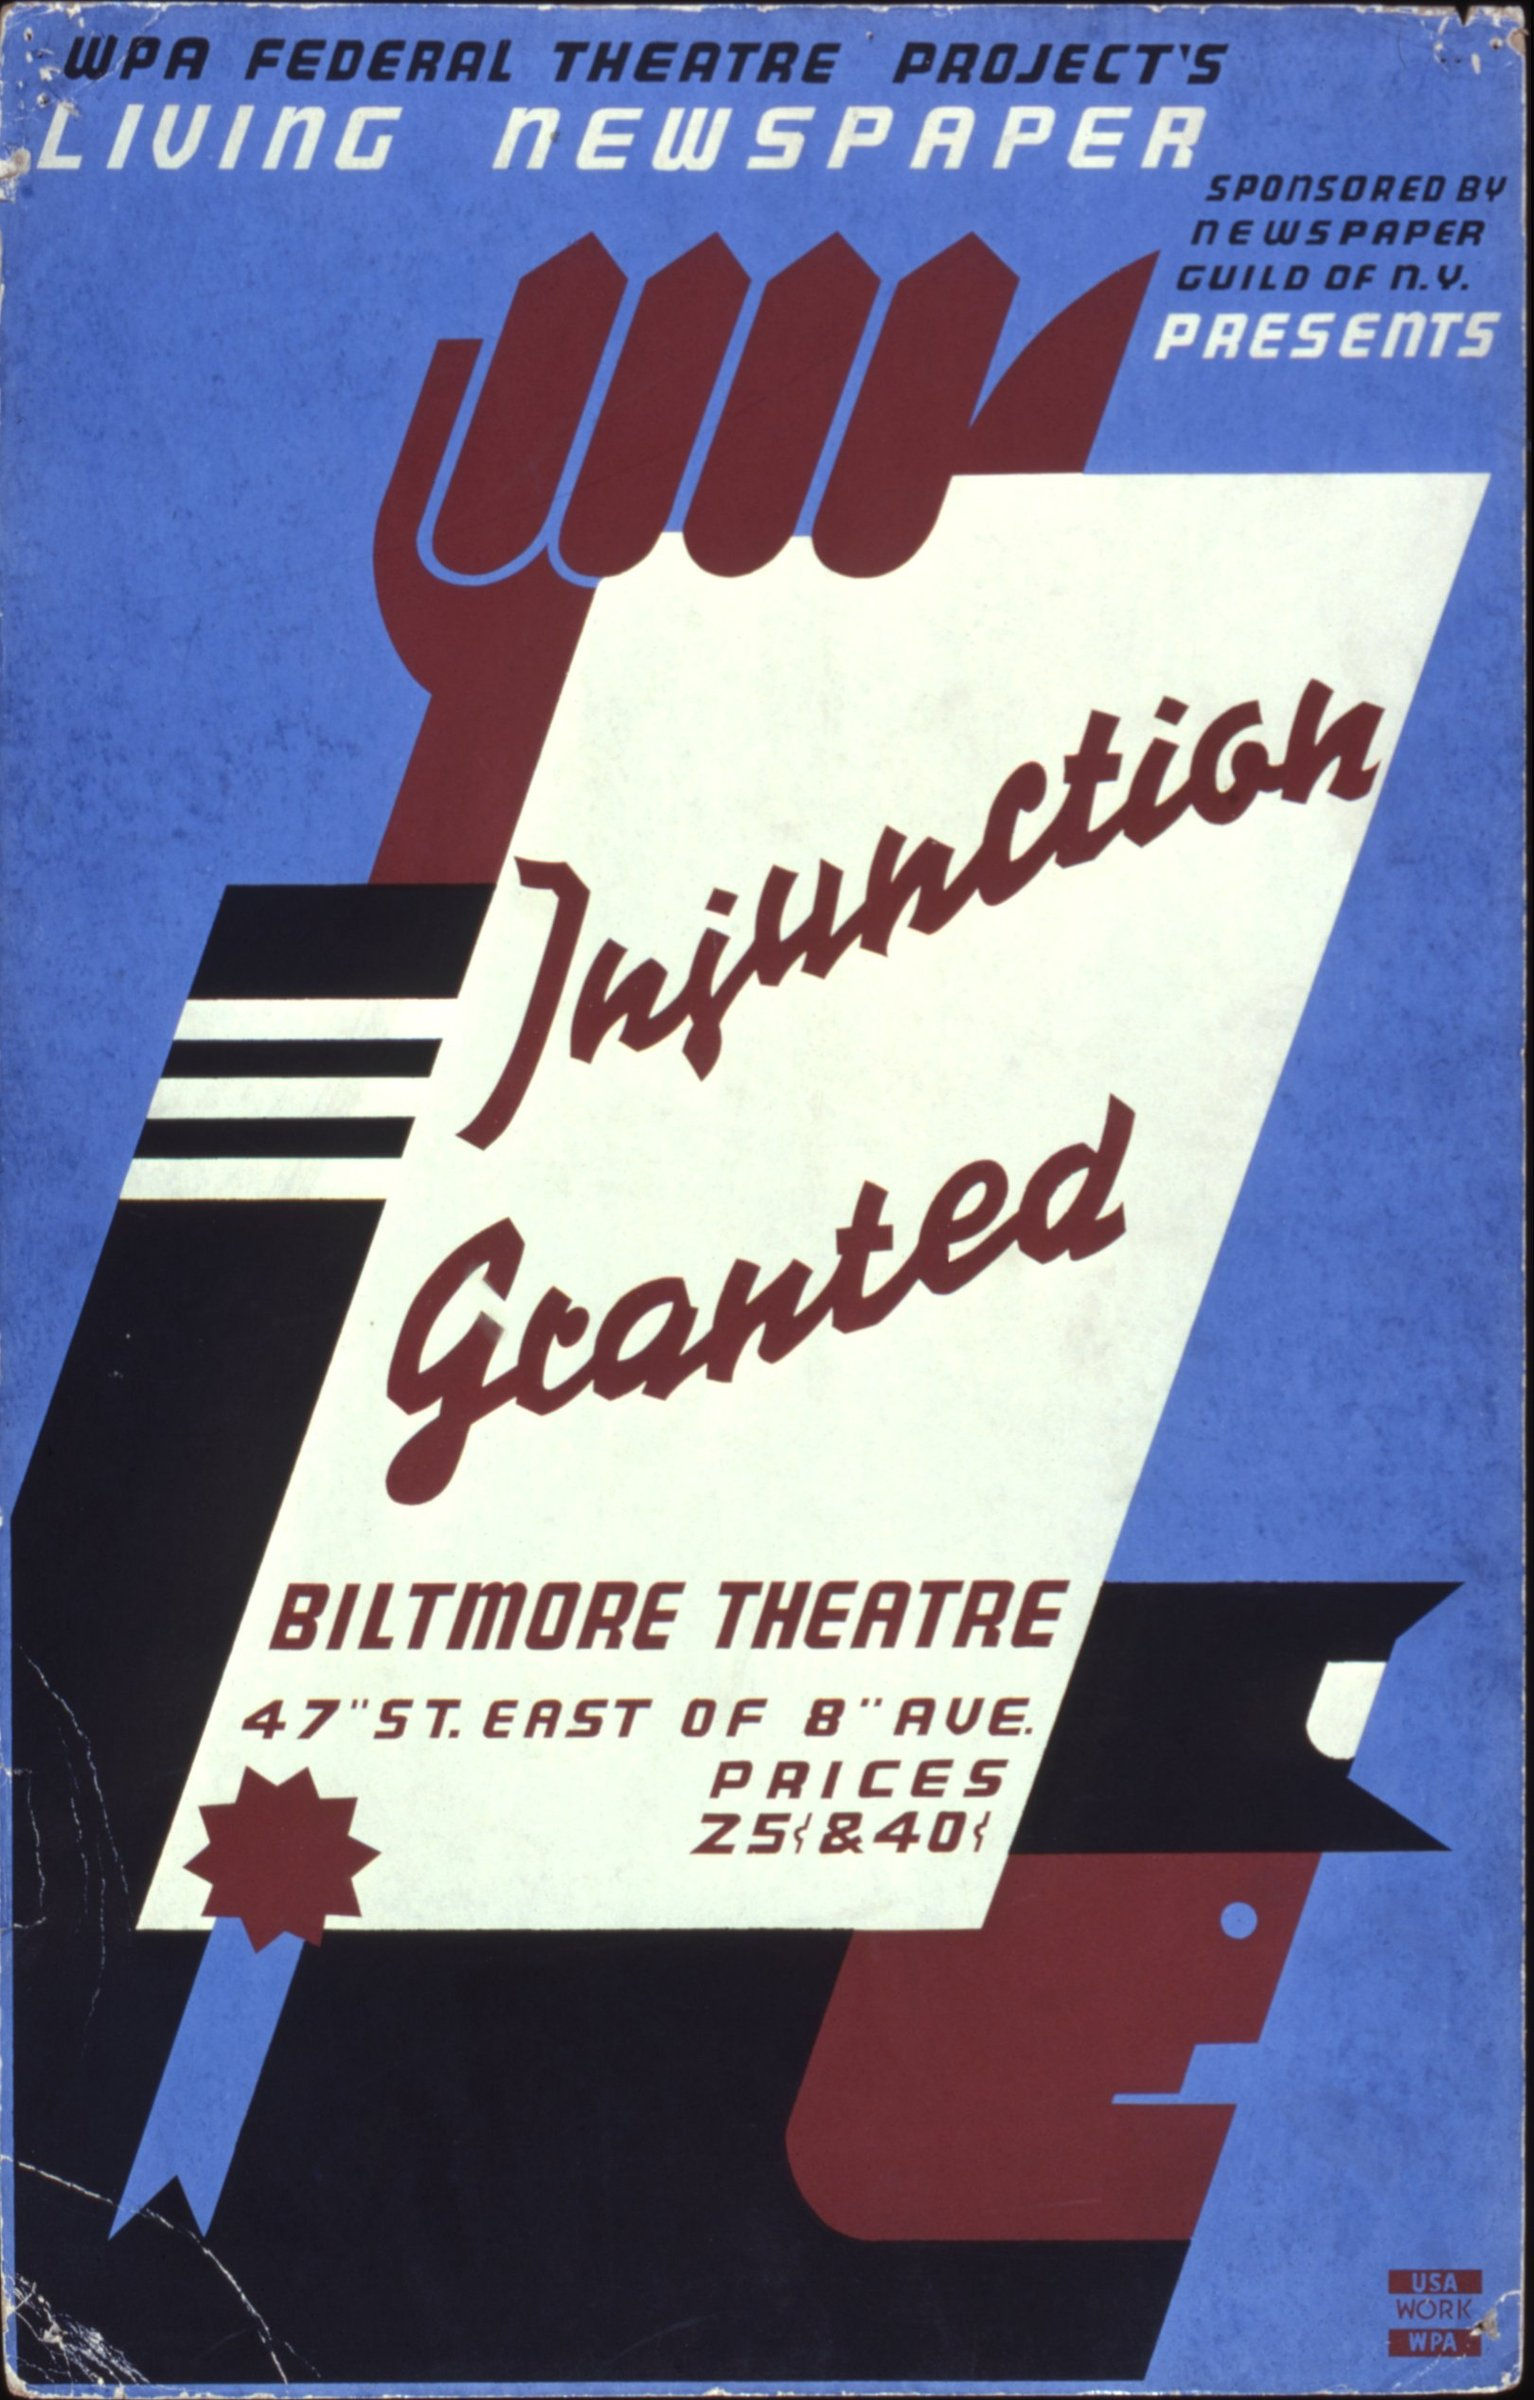 federal theater project The federal theatre project (ftp) (1935-39), was created to provide work for unemployed actors and other theater professionals the ftp was administered by the wpa as part of federal project number one-a group of four culturally-oriented work relief projects, which also included the federal art.